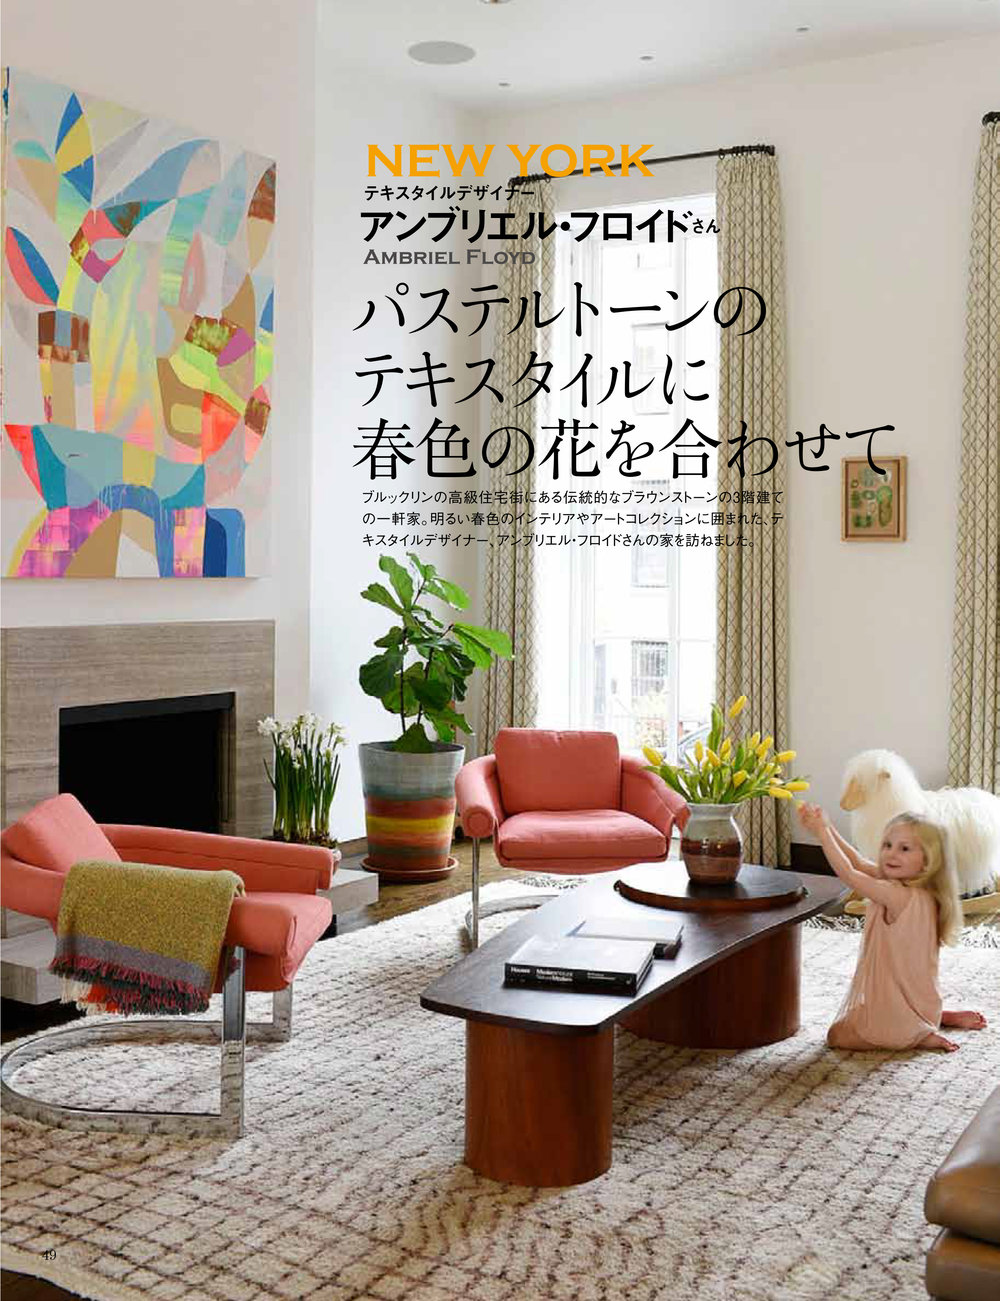 MRS Magazine   Ambriel Floyd at home with Japan's MRS Magazine